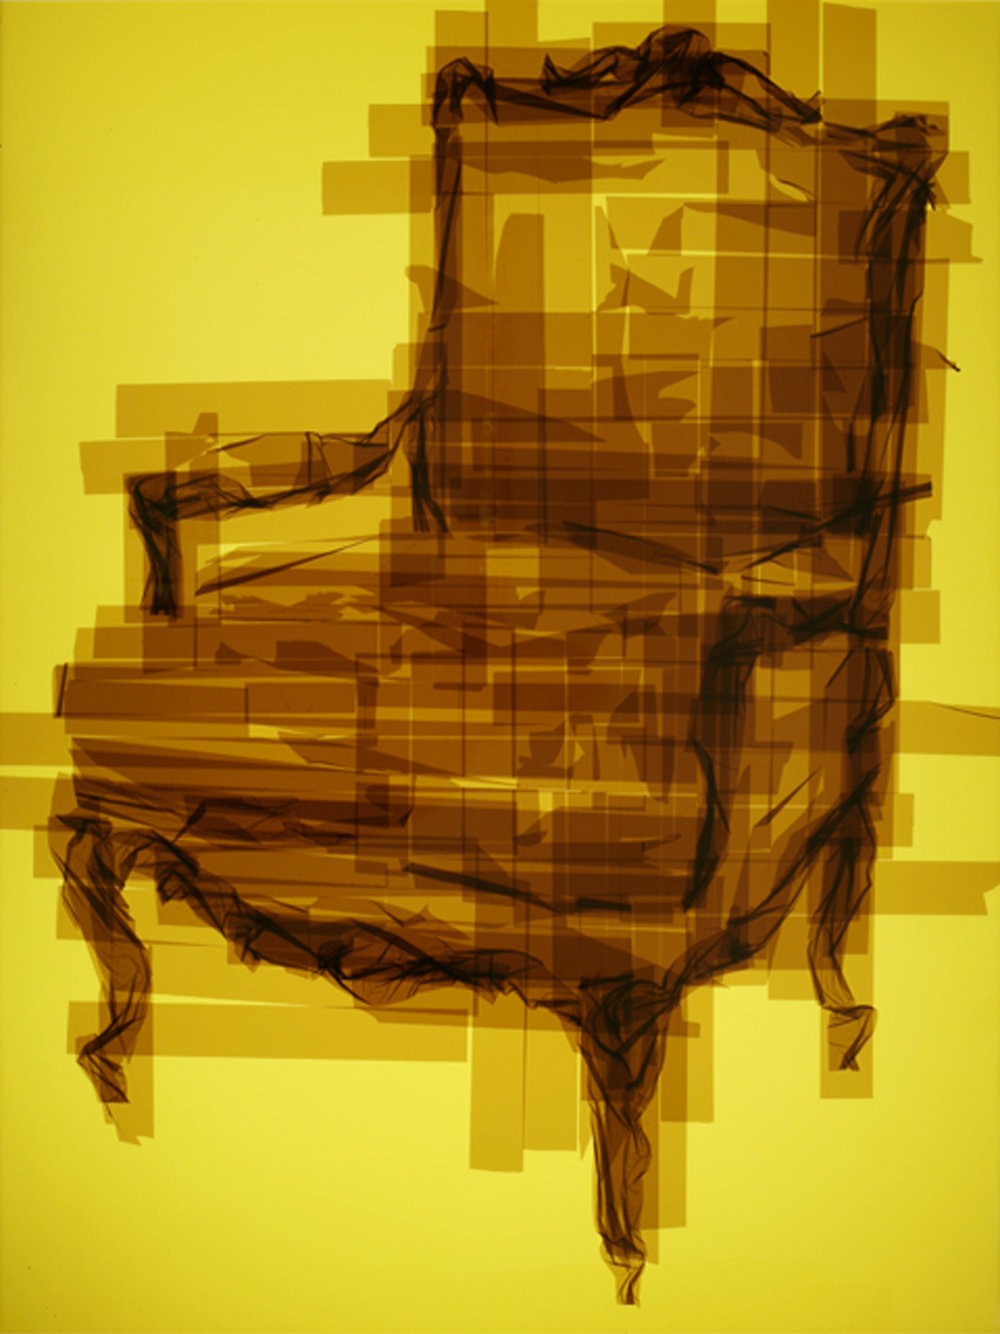 Chair 15, 49 x 37 x 4.5 inches / 124.5 x 94 x 11.5 cm, translucent packaging tape on acrylic panels with LED light box, 2015